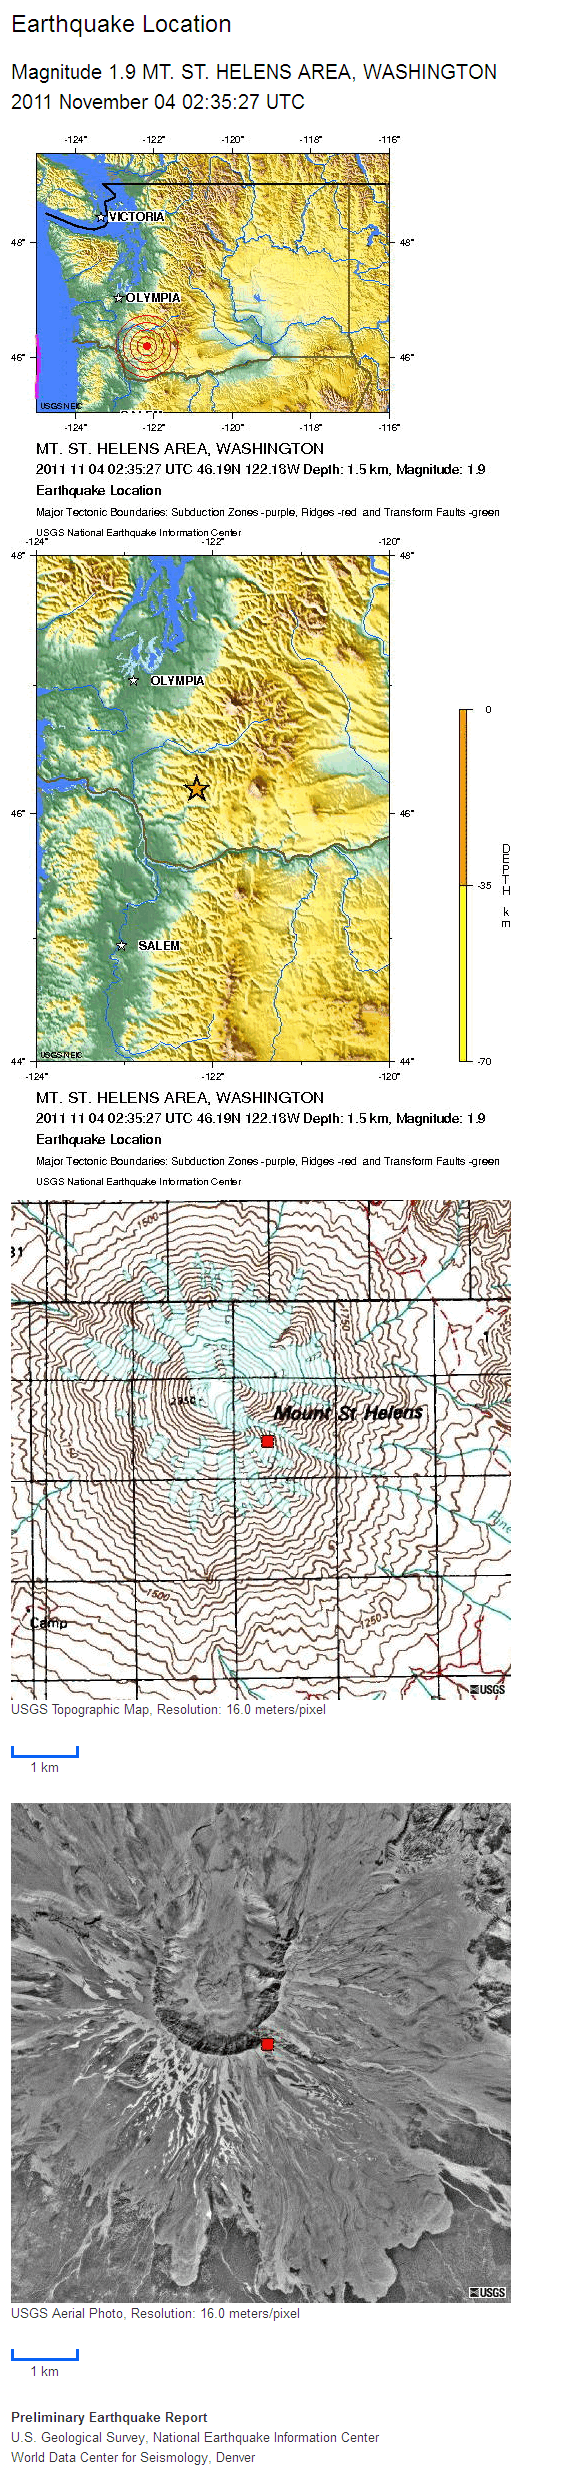 Mt St Helens Location Maps